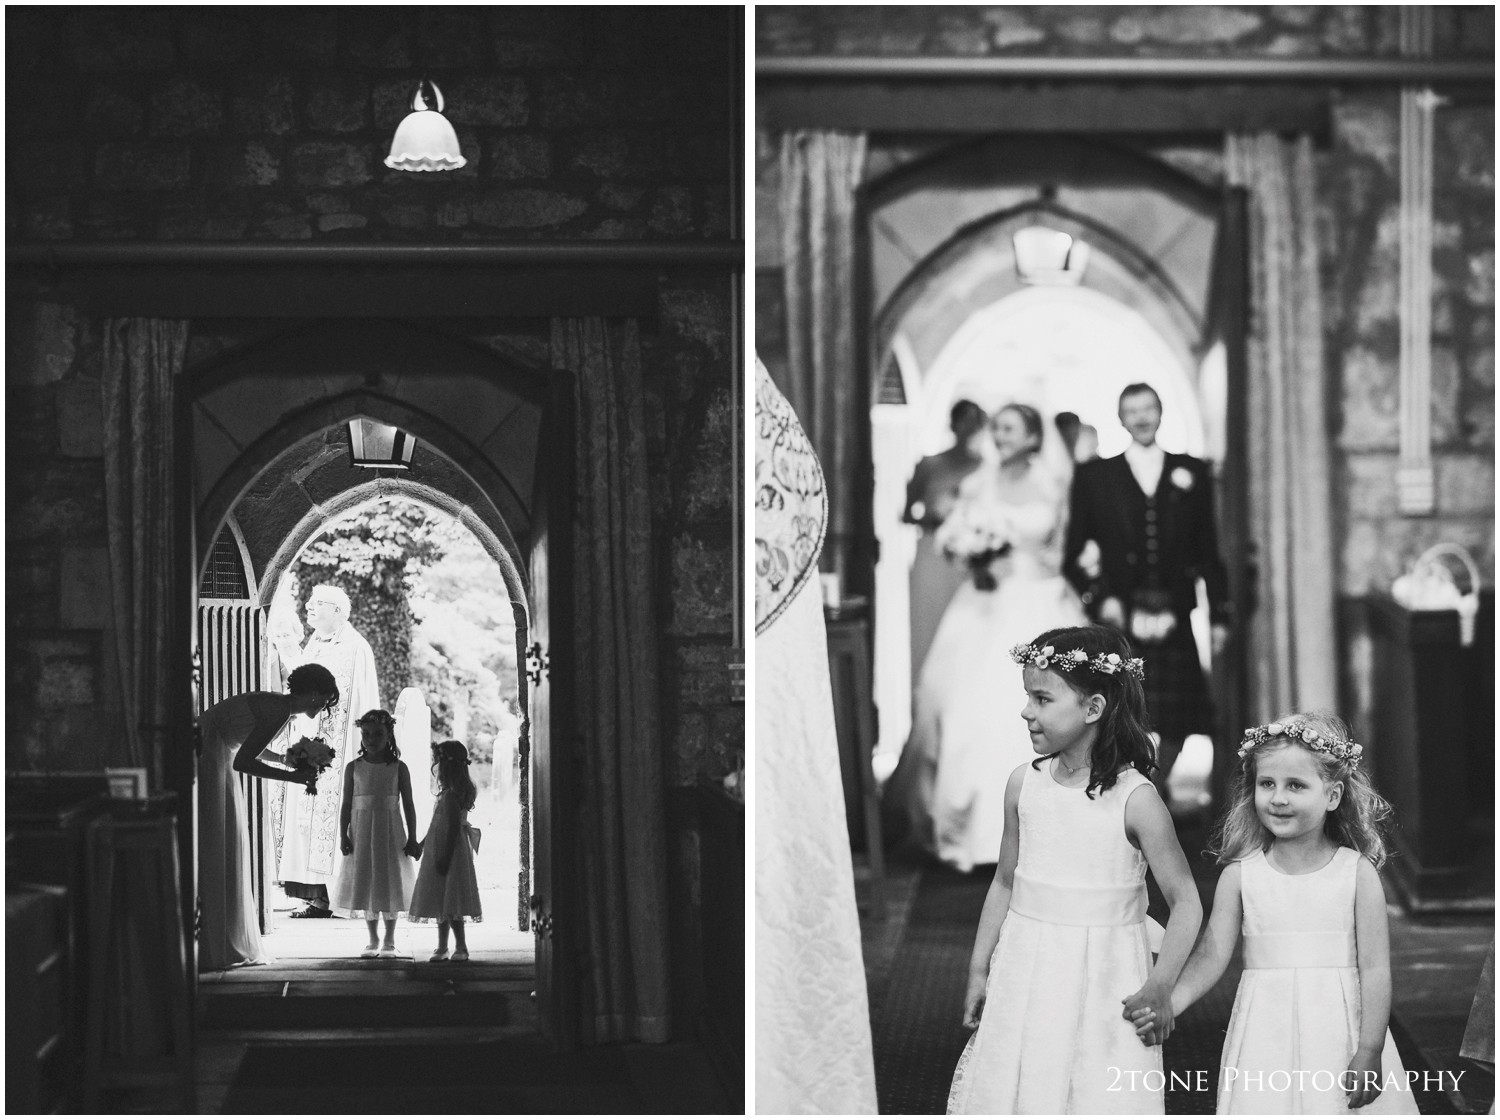 A quiet word of advice or encouragement from an adult bridesmaid to the younger ones, another of my favourite shots from this wedding.